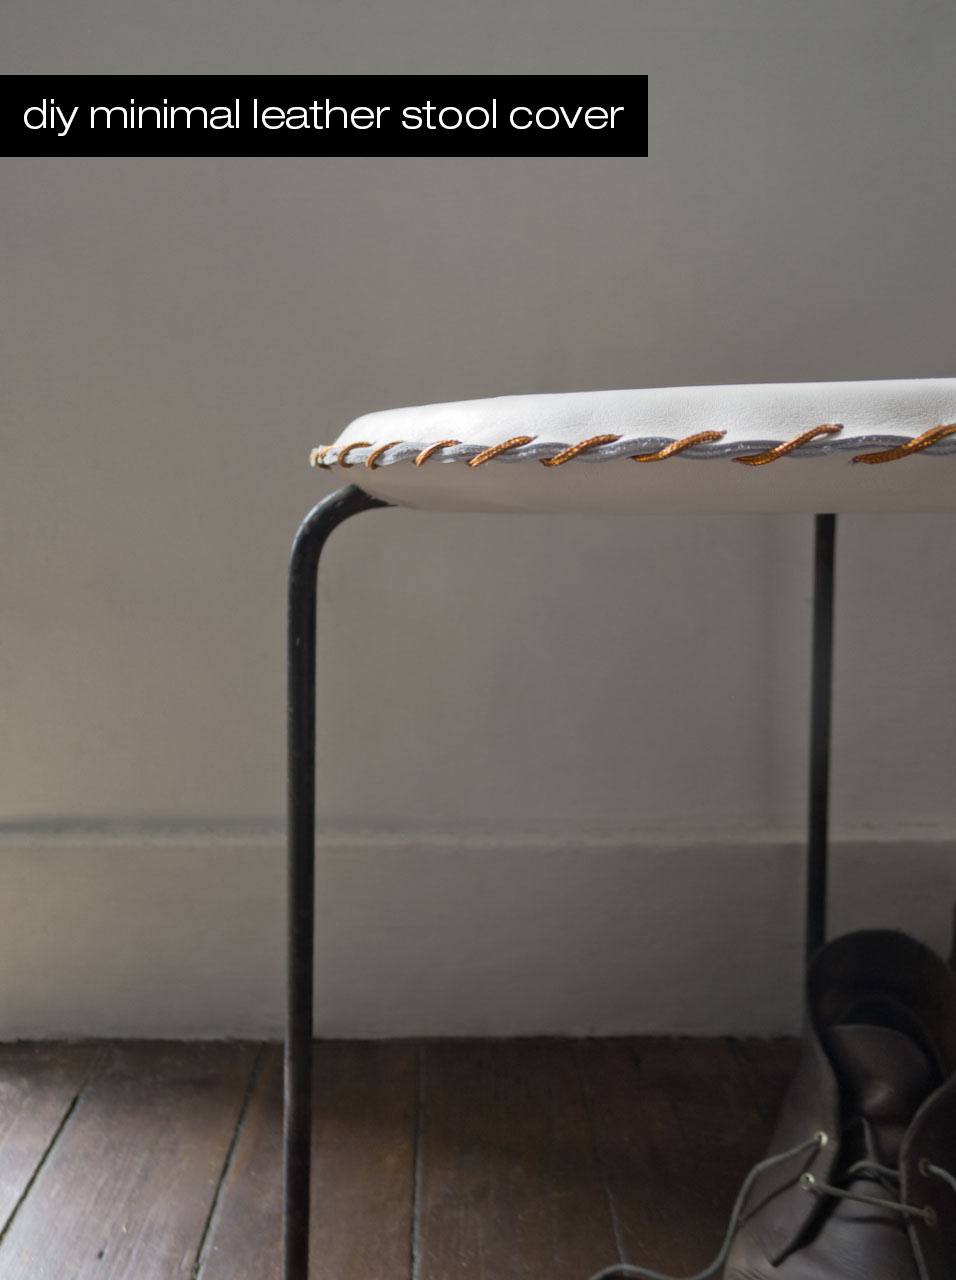 DIY-Stitched-Leather-Stool-Header